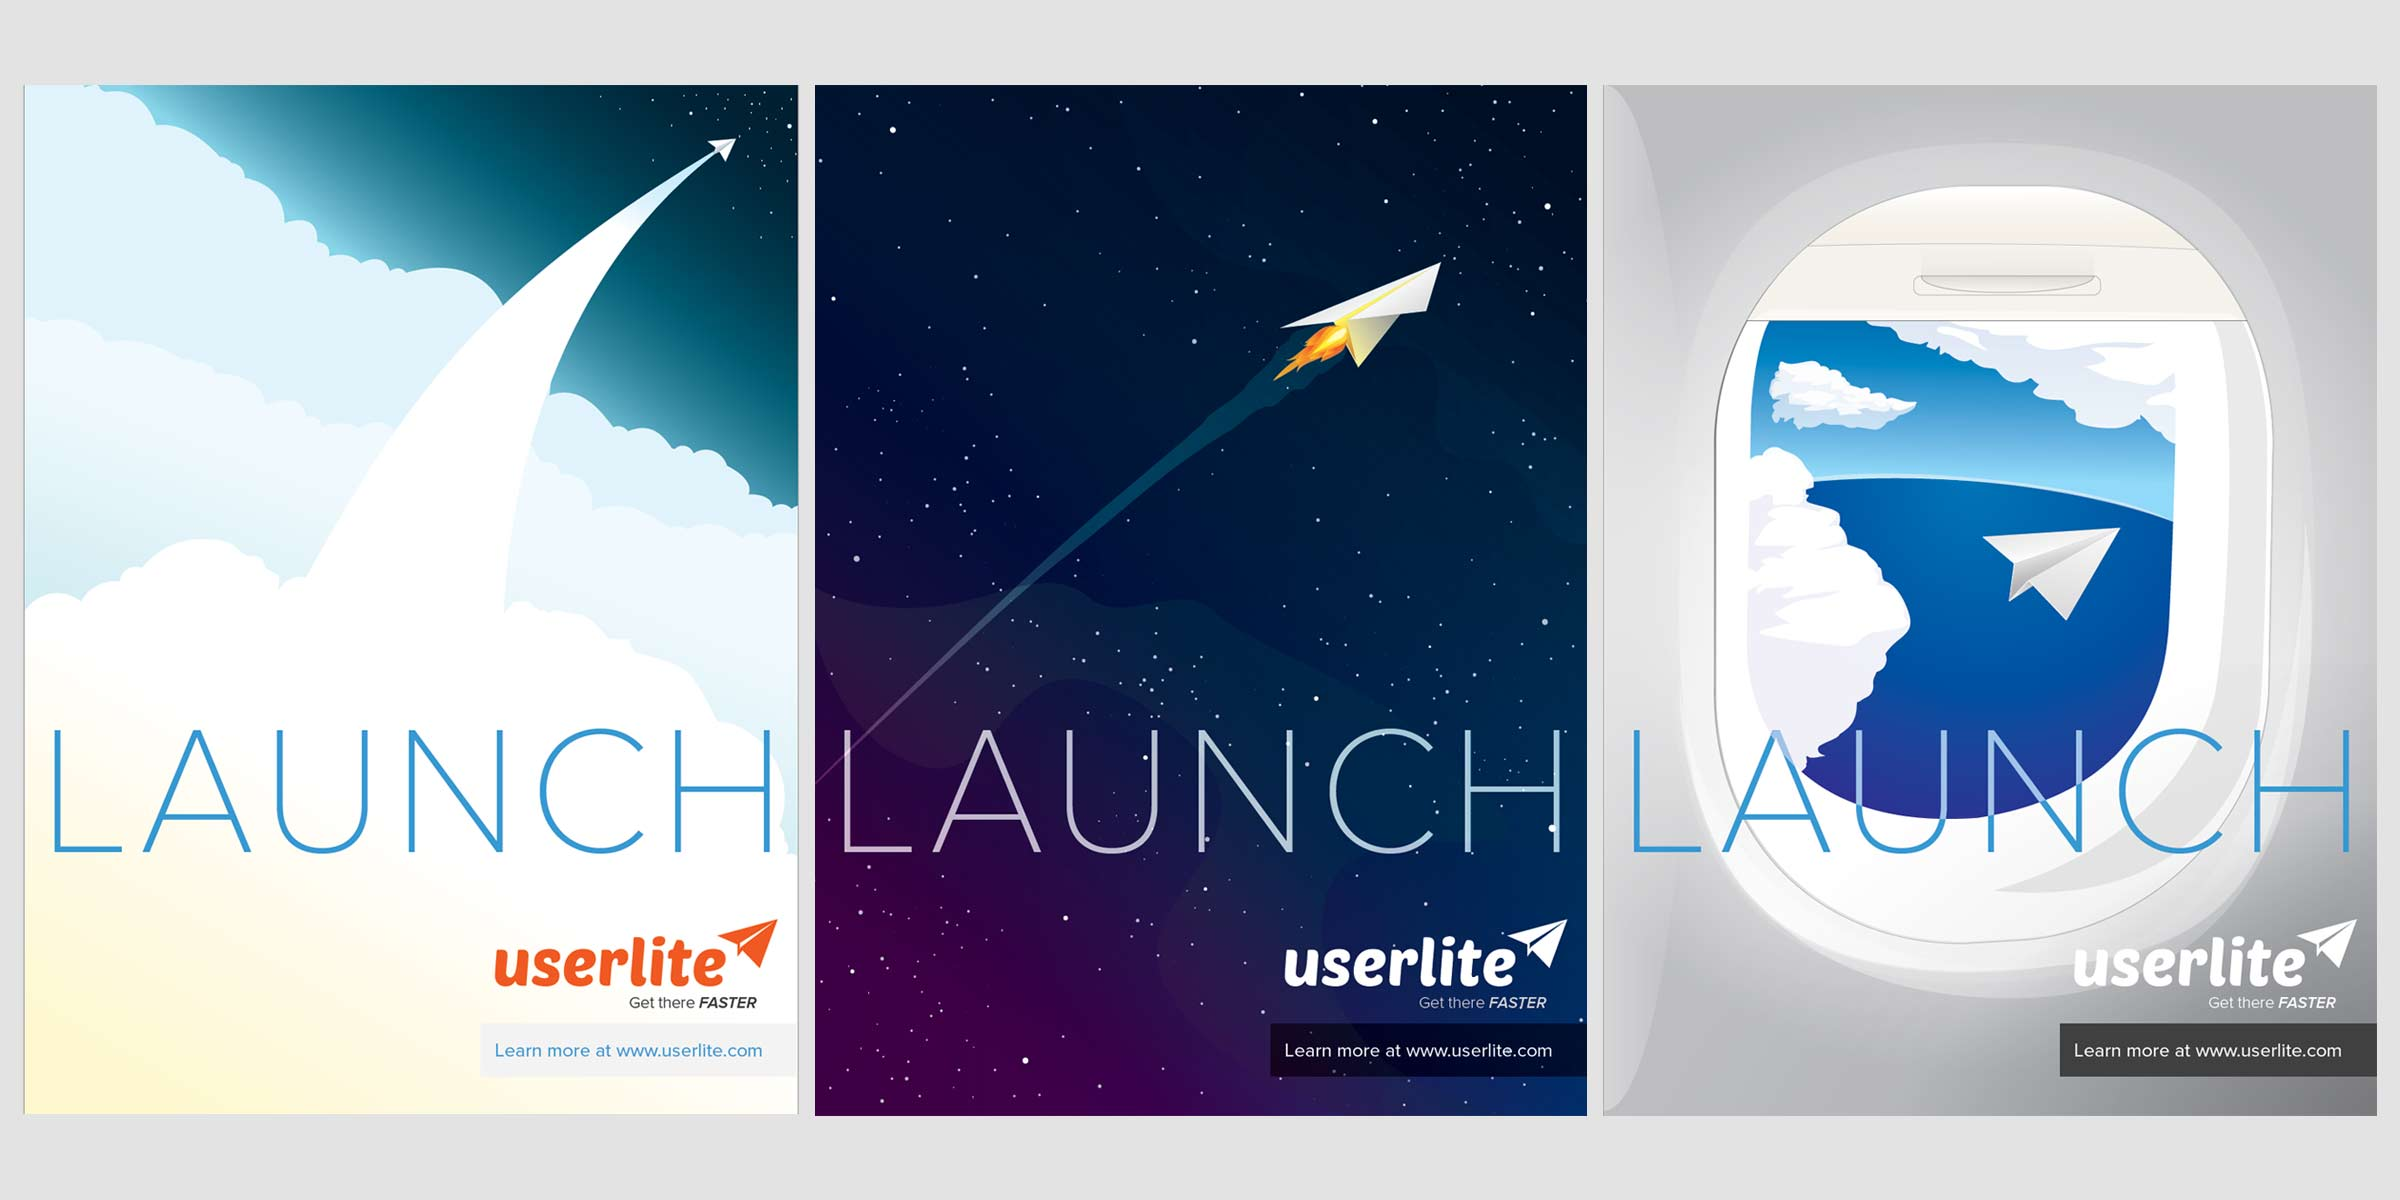 Userlite Posters